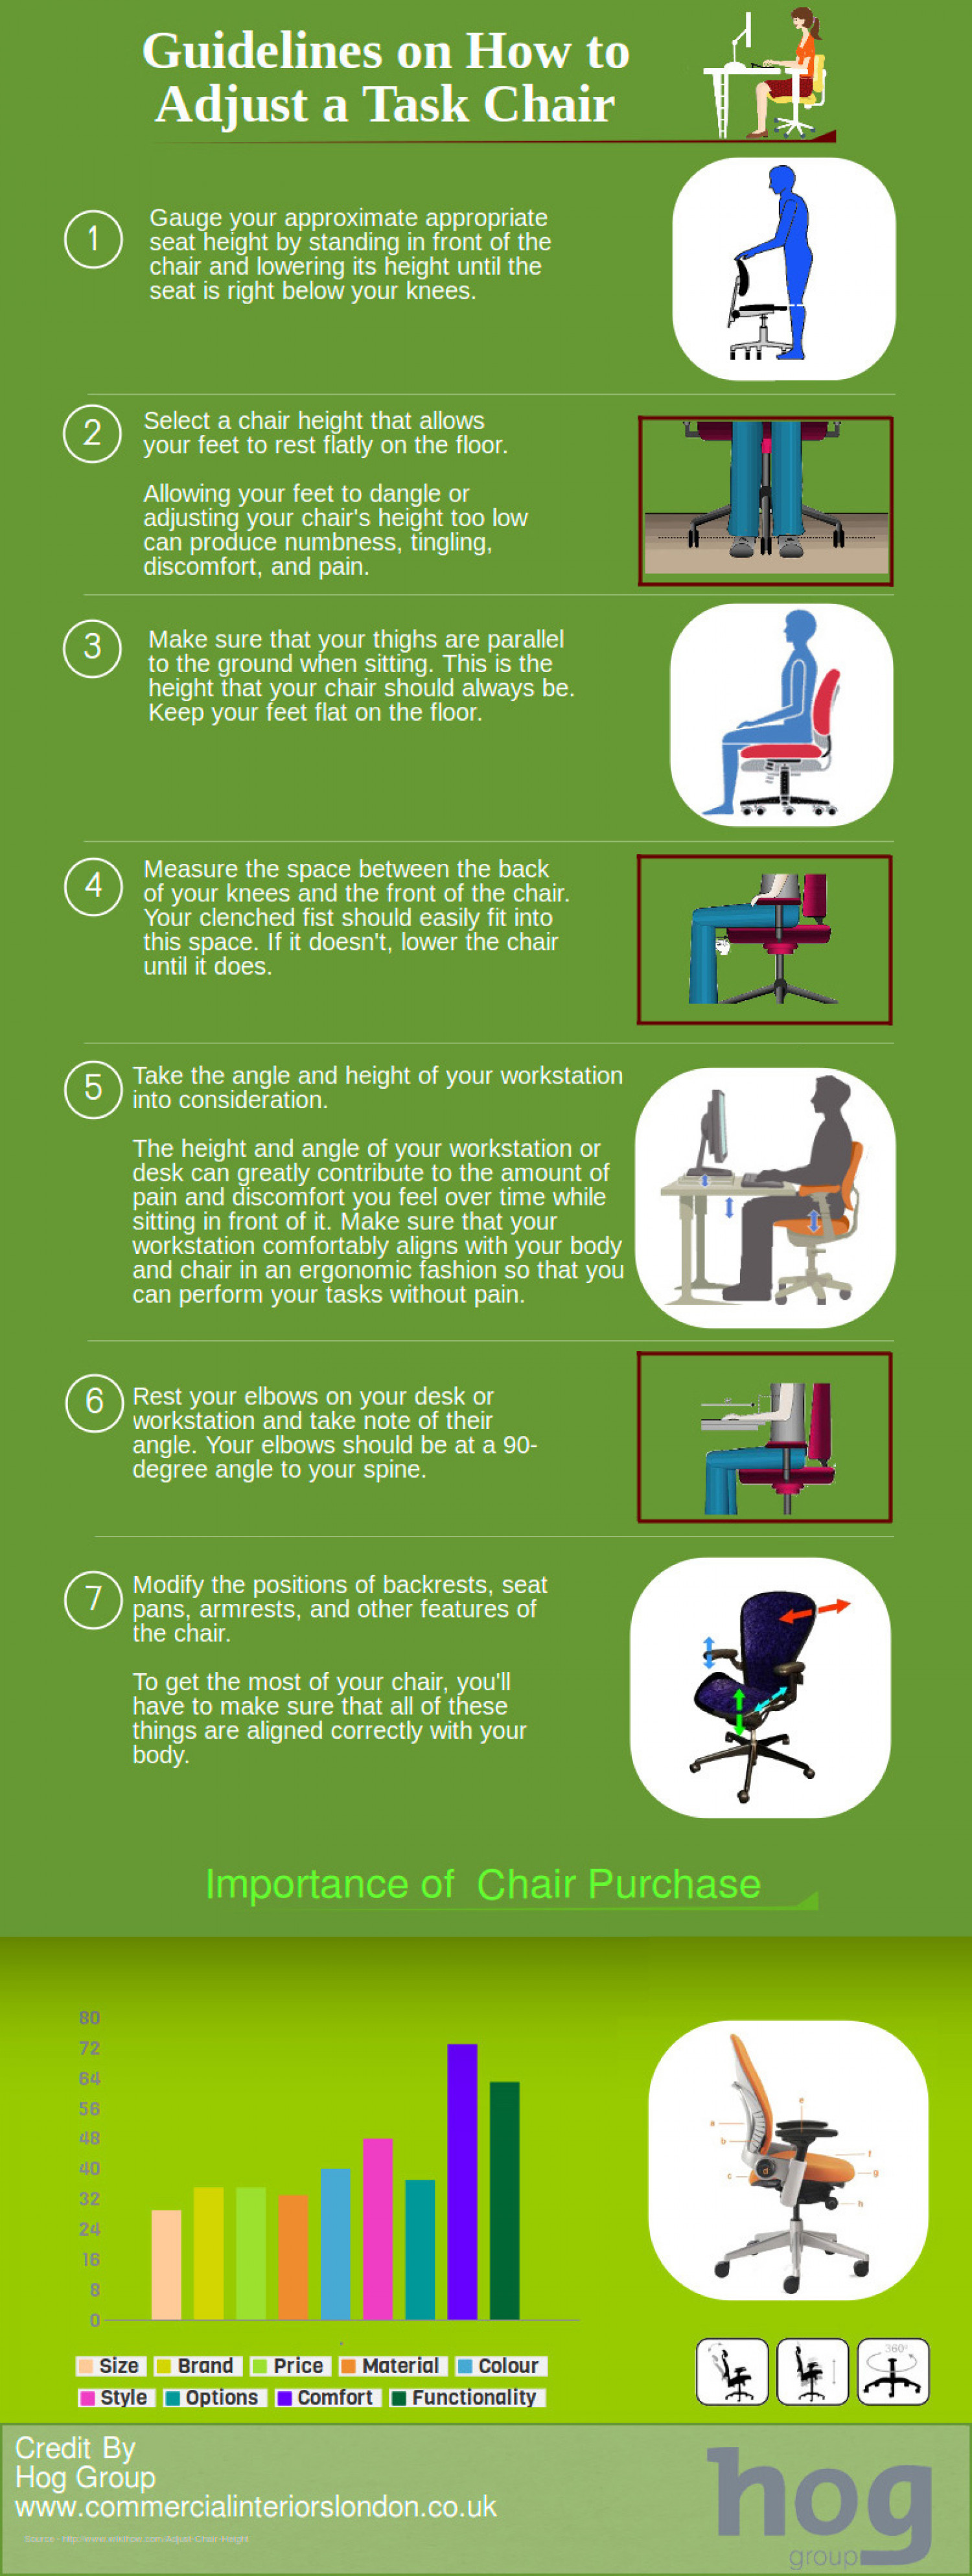 Guidelines on How to Adjust a Task Chair Infographic